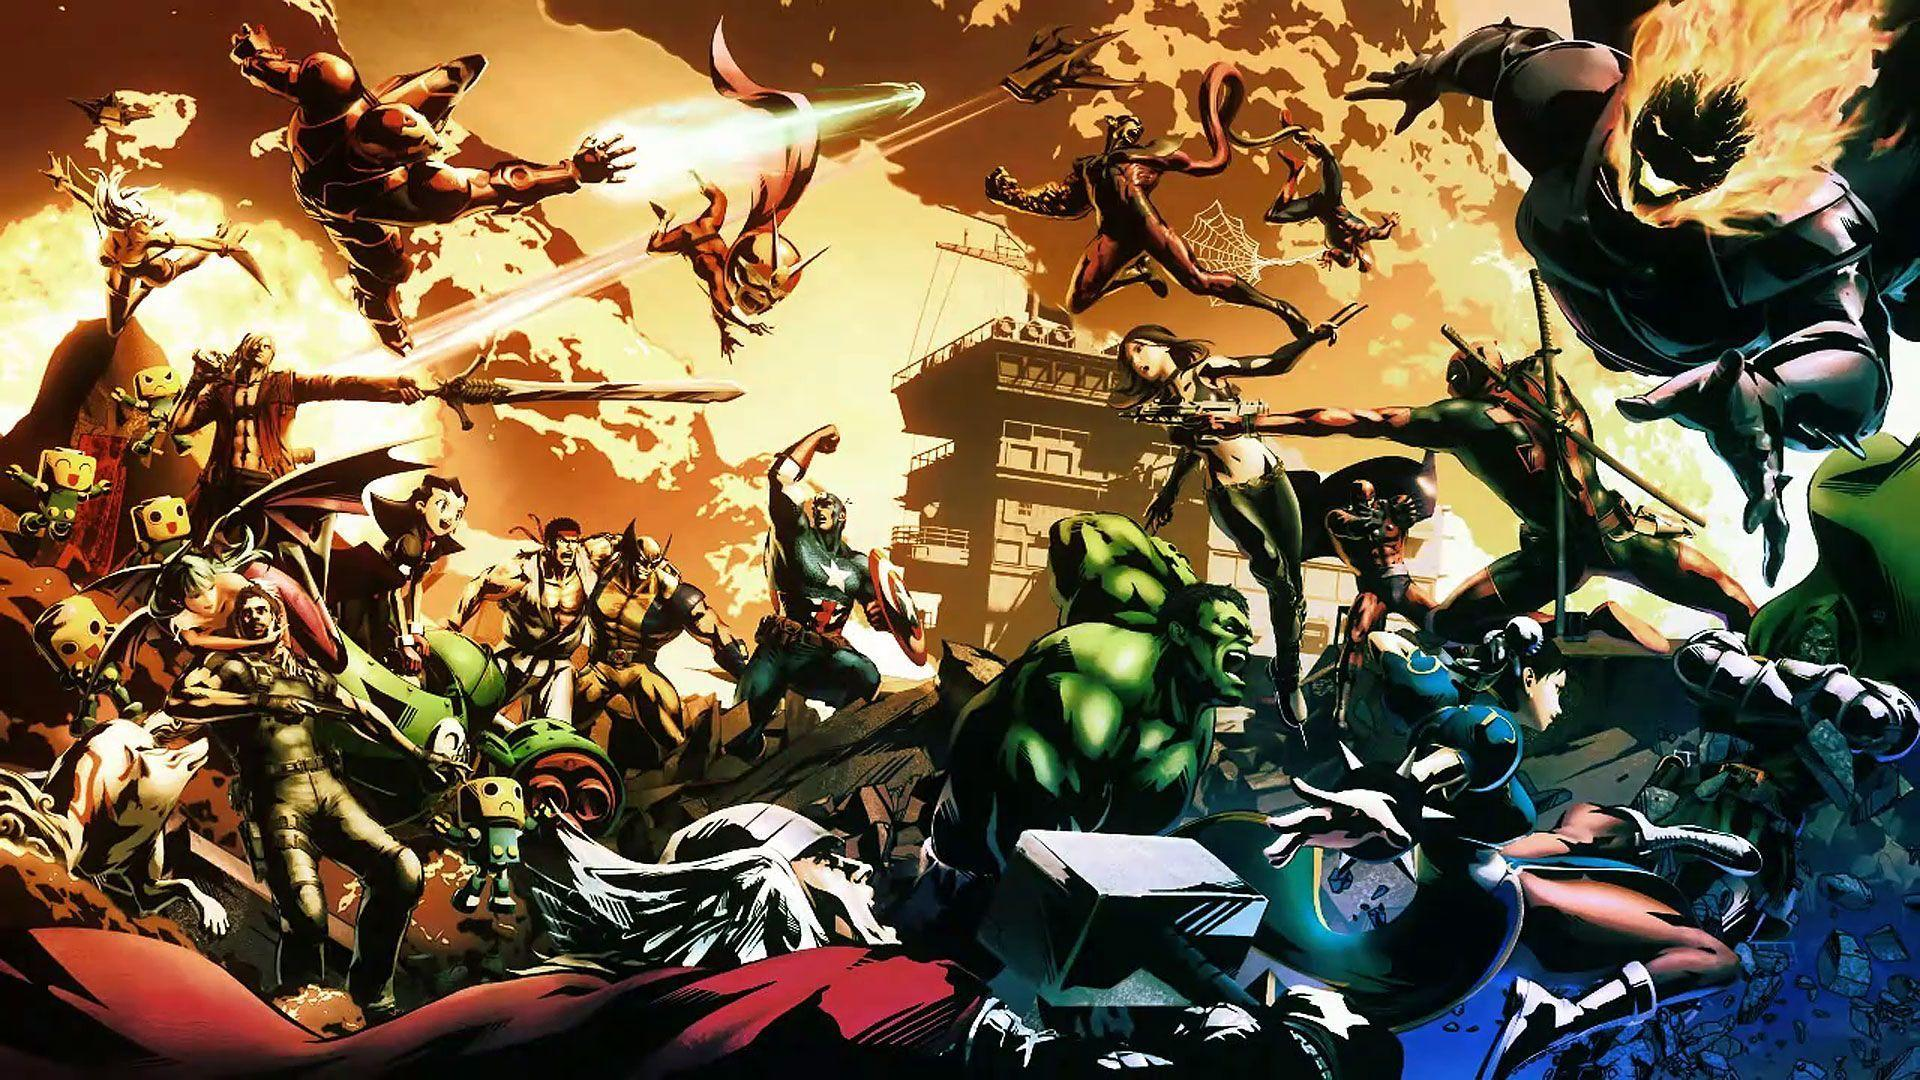 Marvel vs Capcom 3 Wallpaper by ParawkaSaiyan64 on DeviantArt